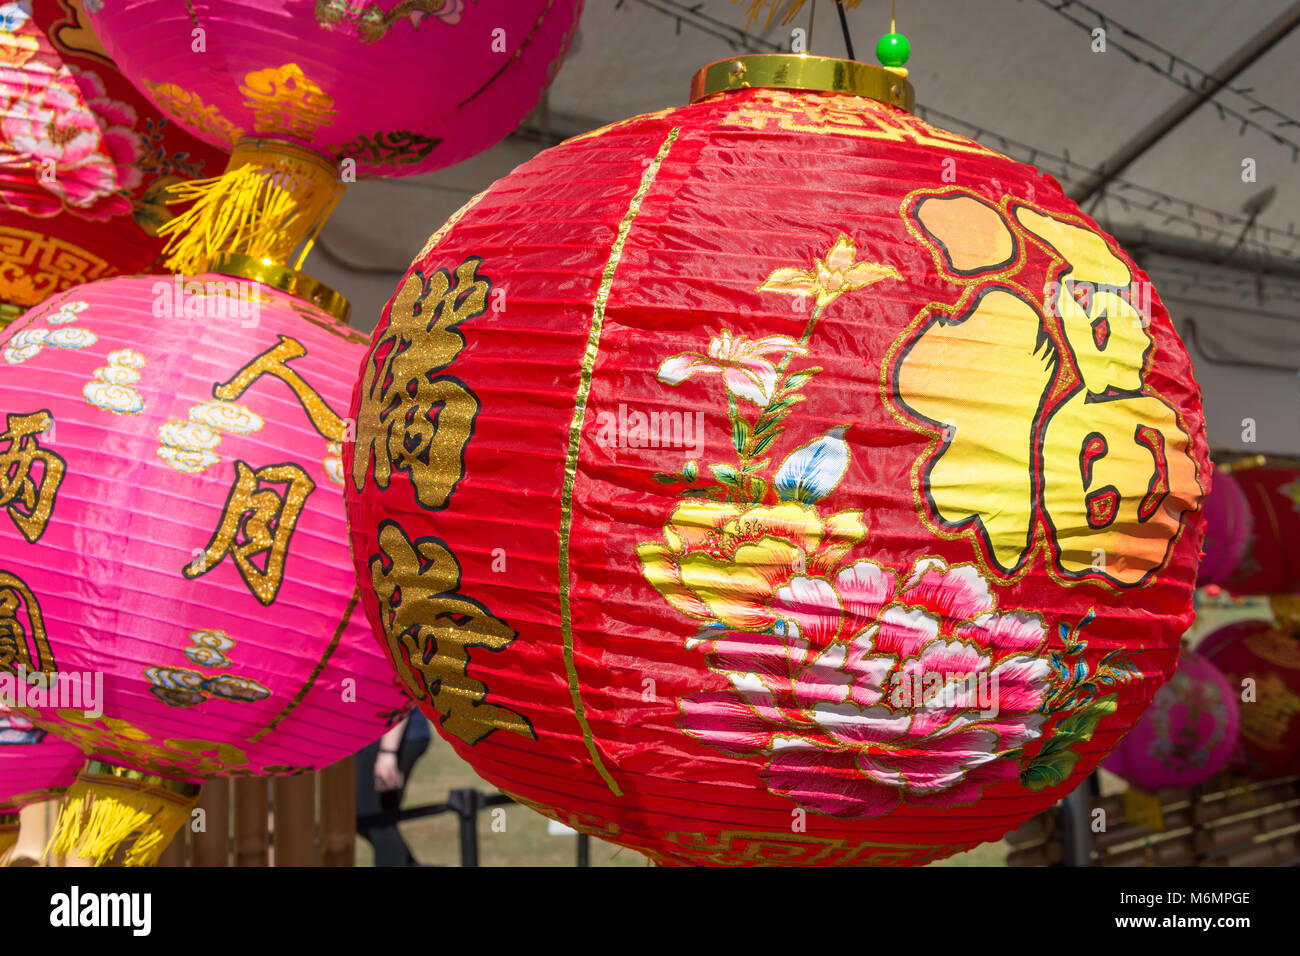 Chinese lanterns at 'Noodle night markets' event in North Hagley Park, Christchurch, Canterbury, New Zealand - Stock Image